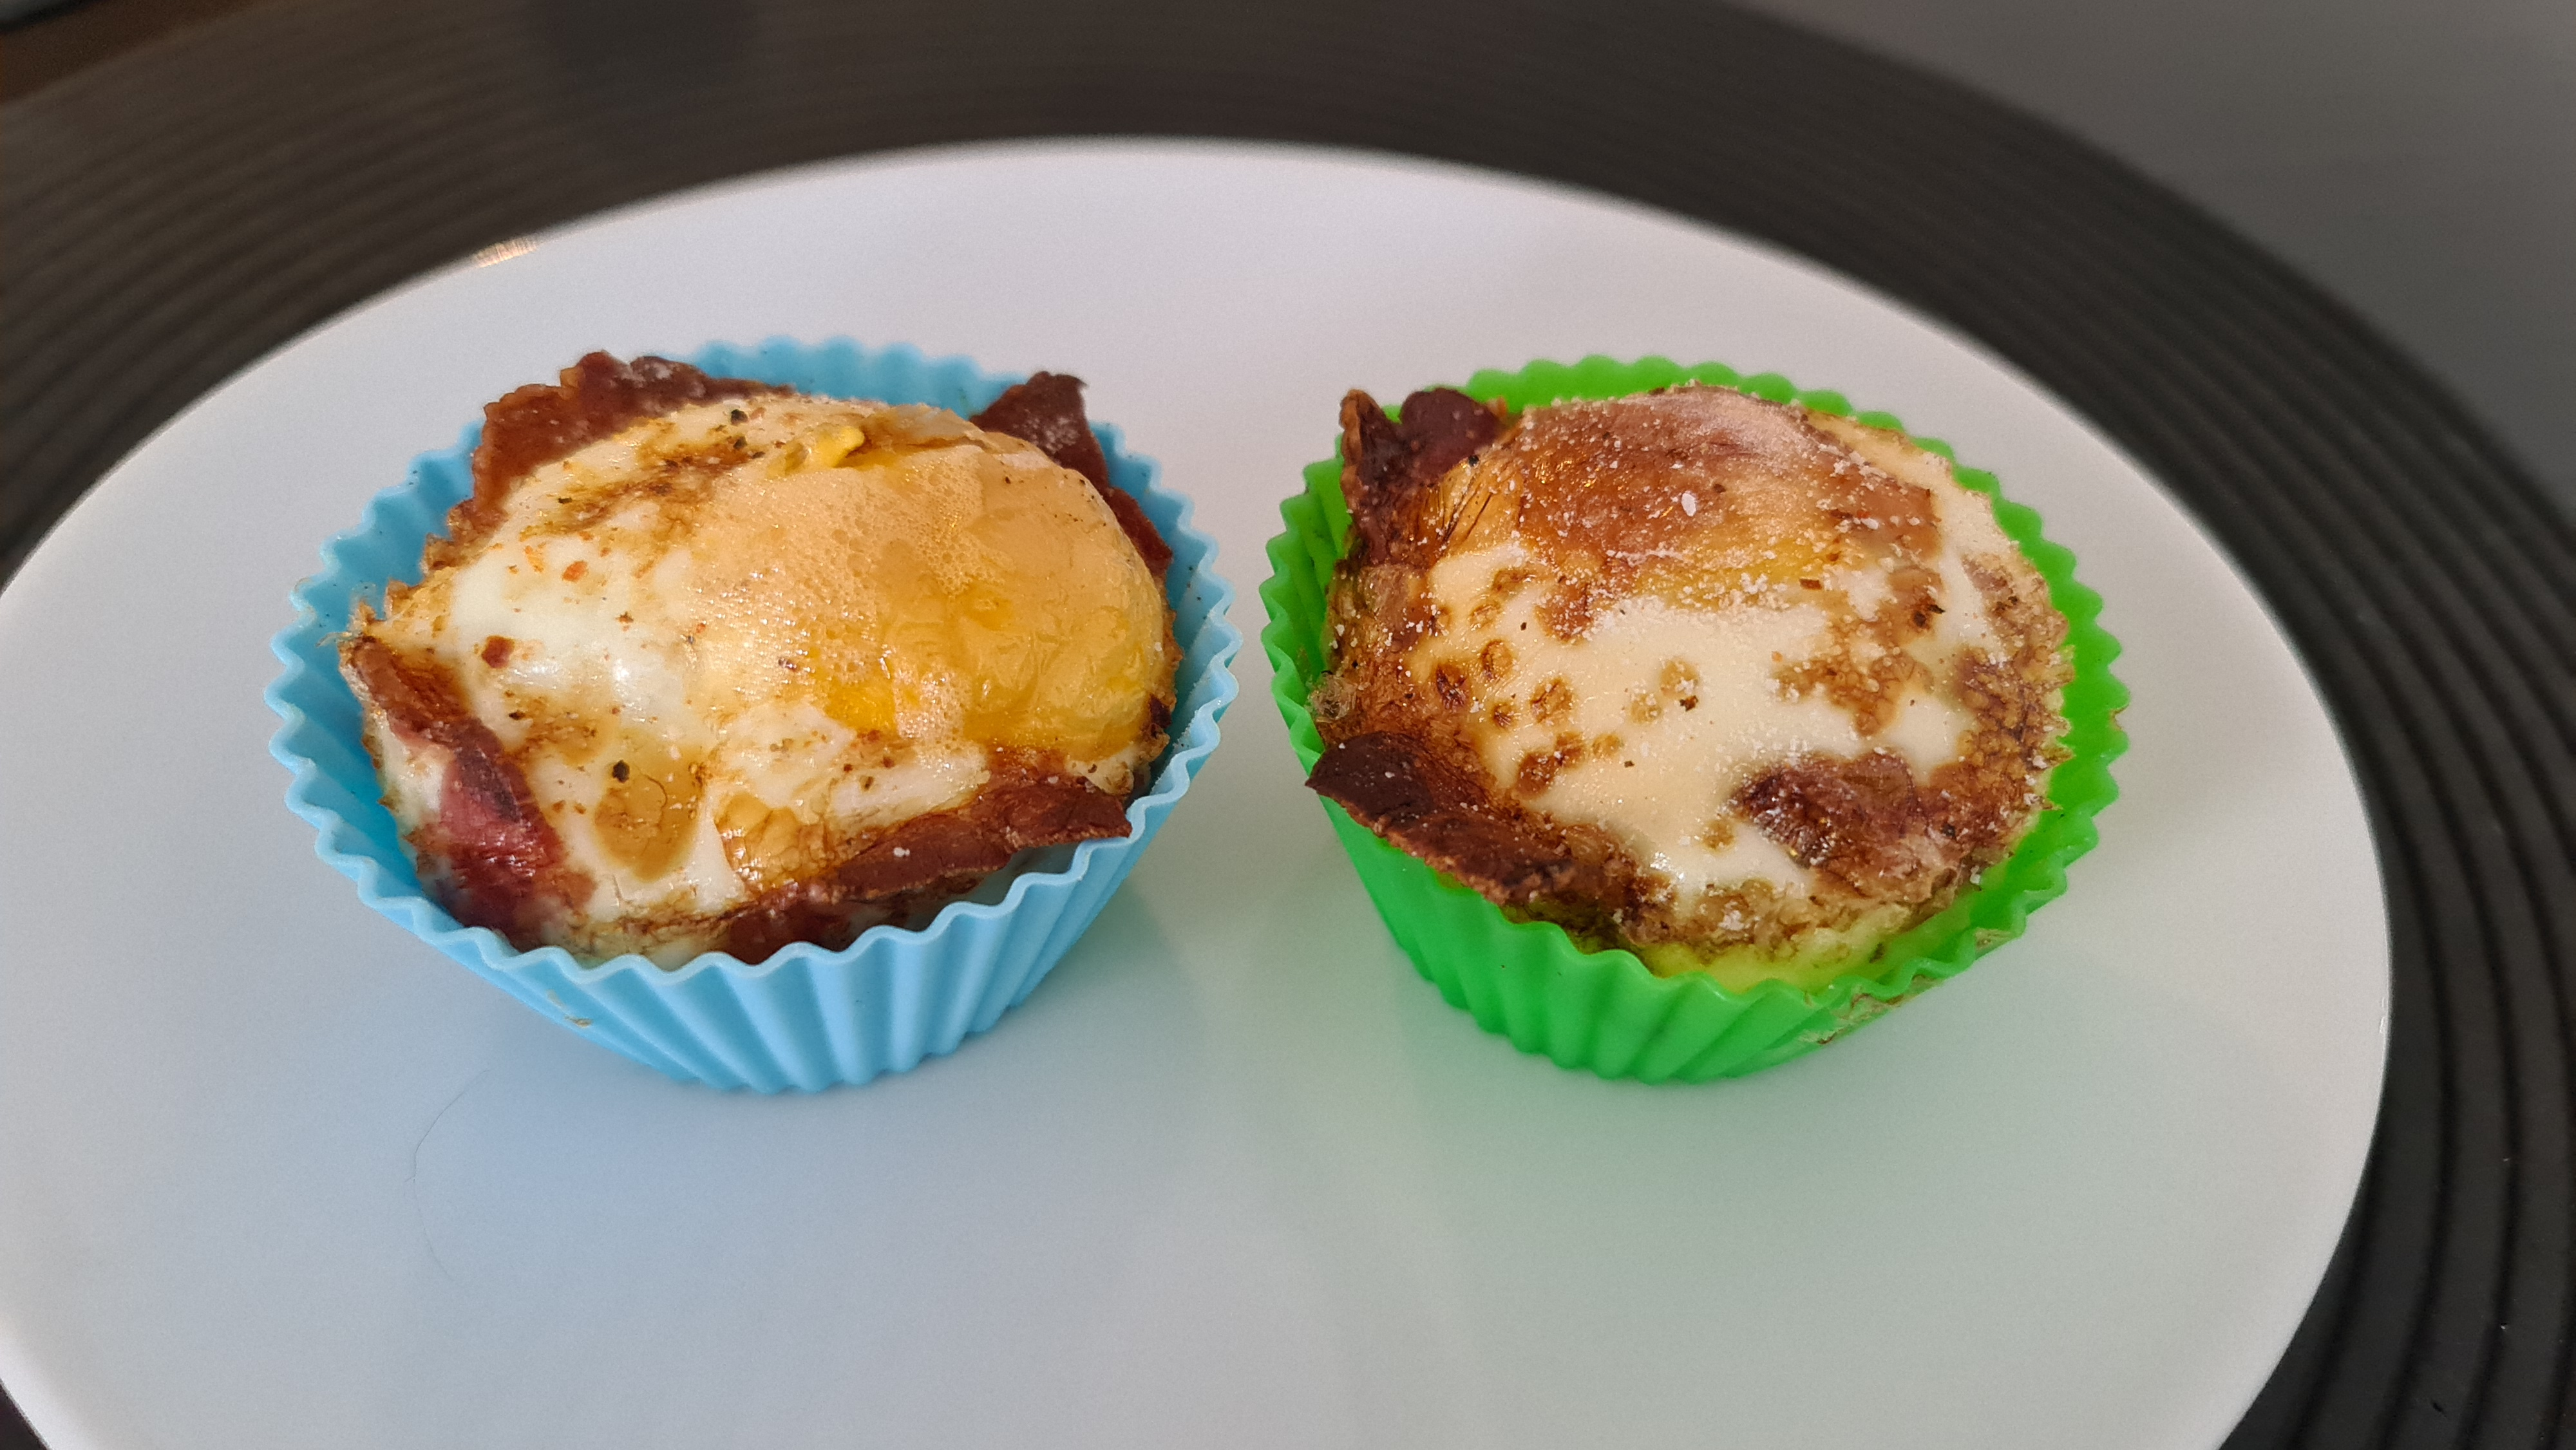 Holz • 2021-01-11 • Bacon-Ei-Muffins 1